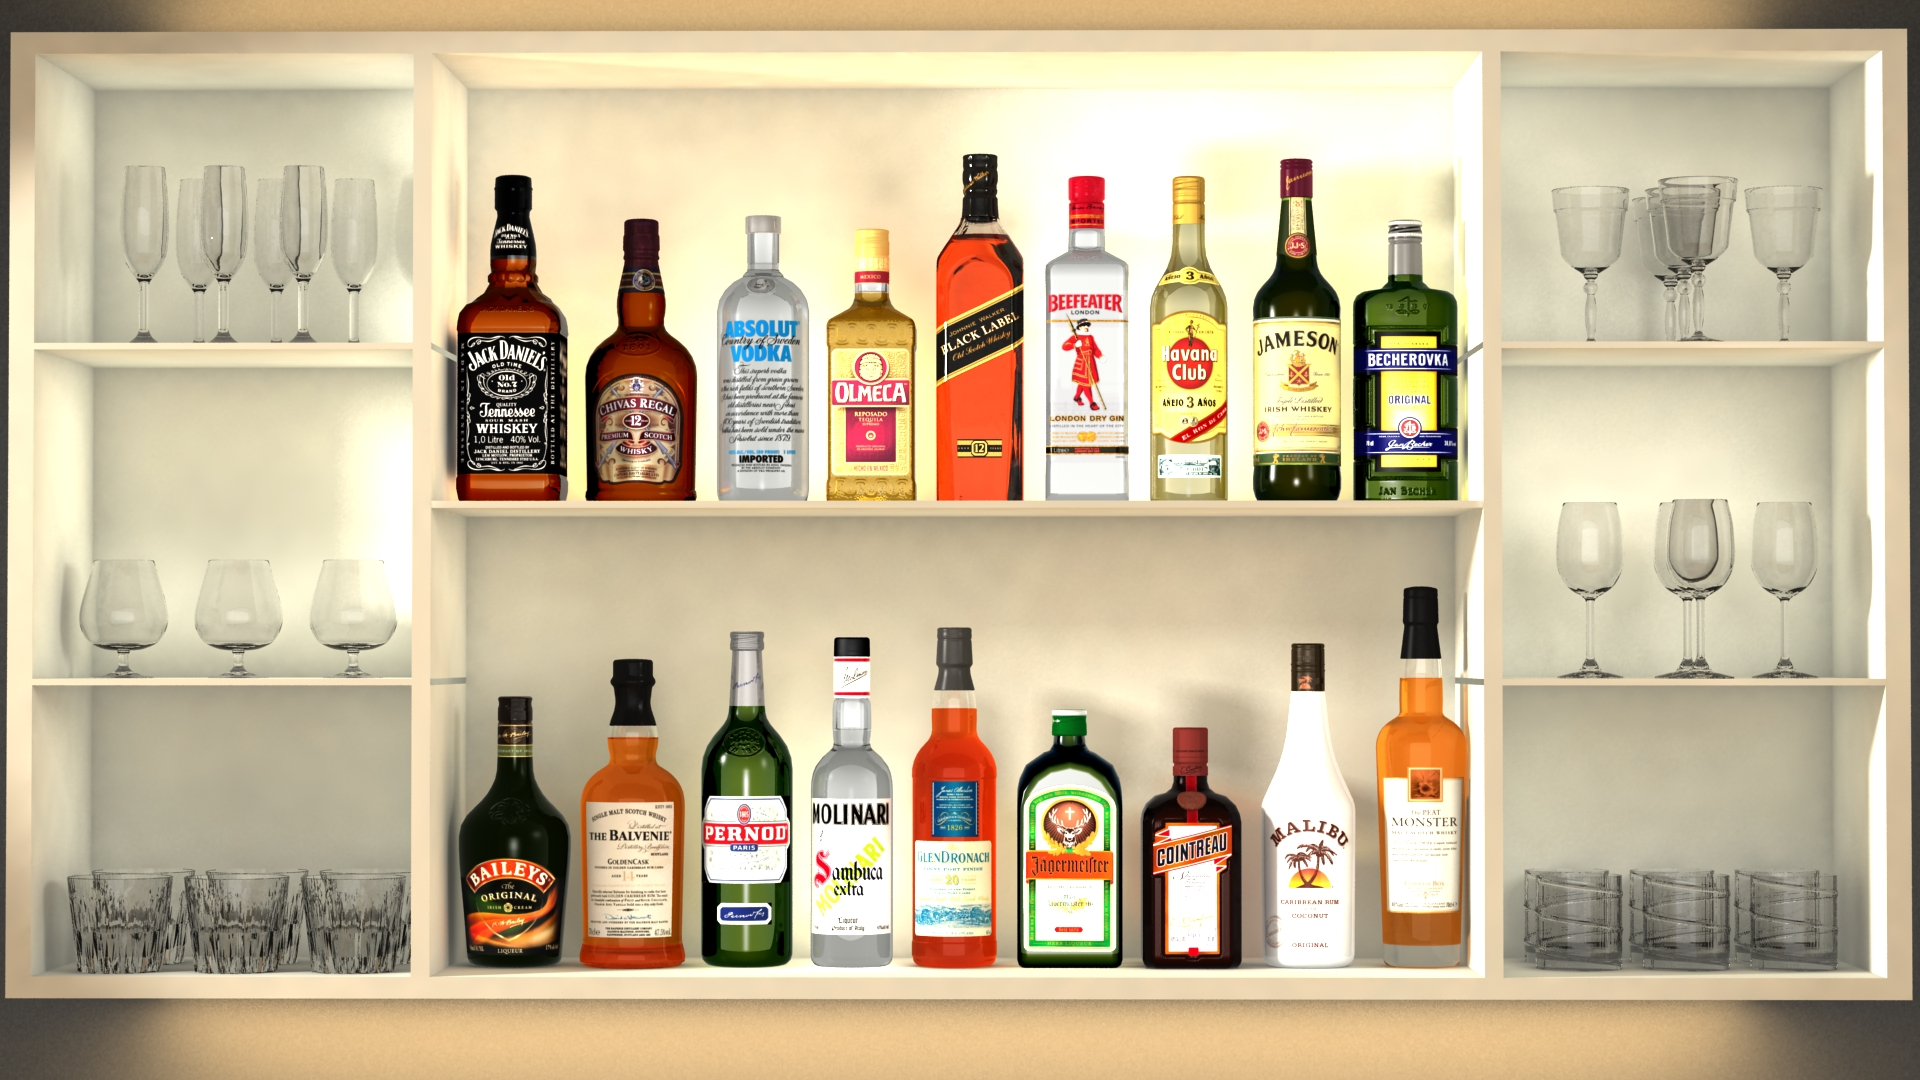 liquor bottles with bar unit interior vr/ar ready 3d model 3ds max  fbx jpeg jpg texture obj 279234